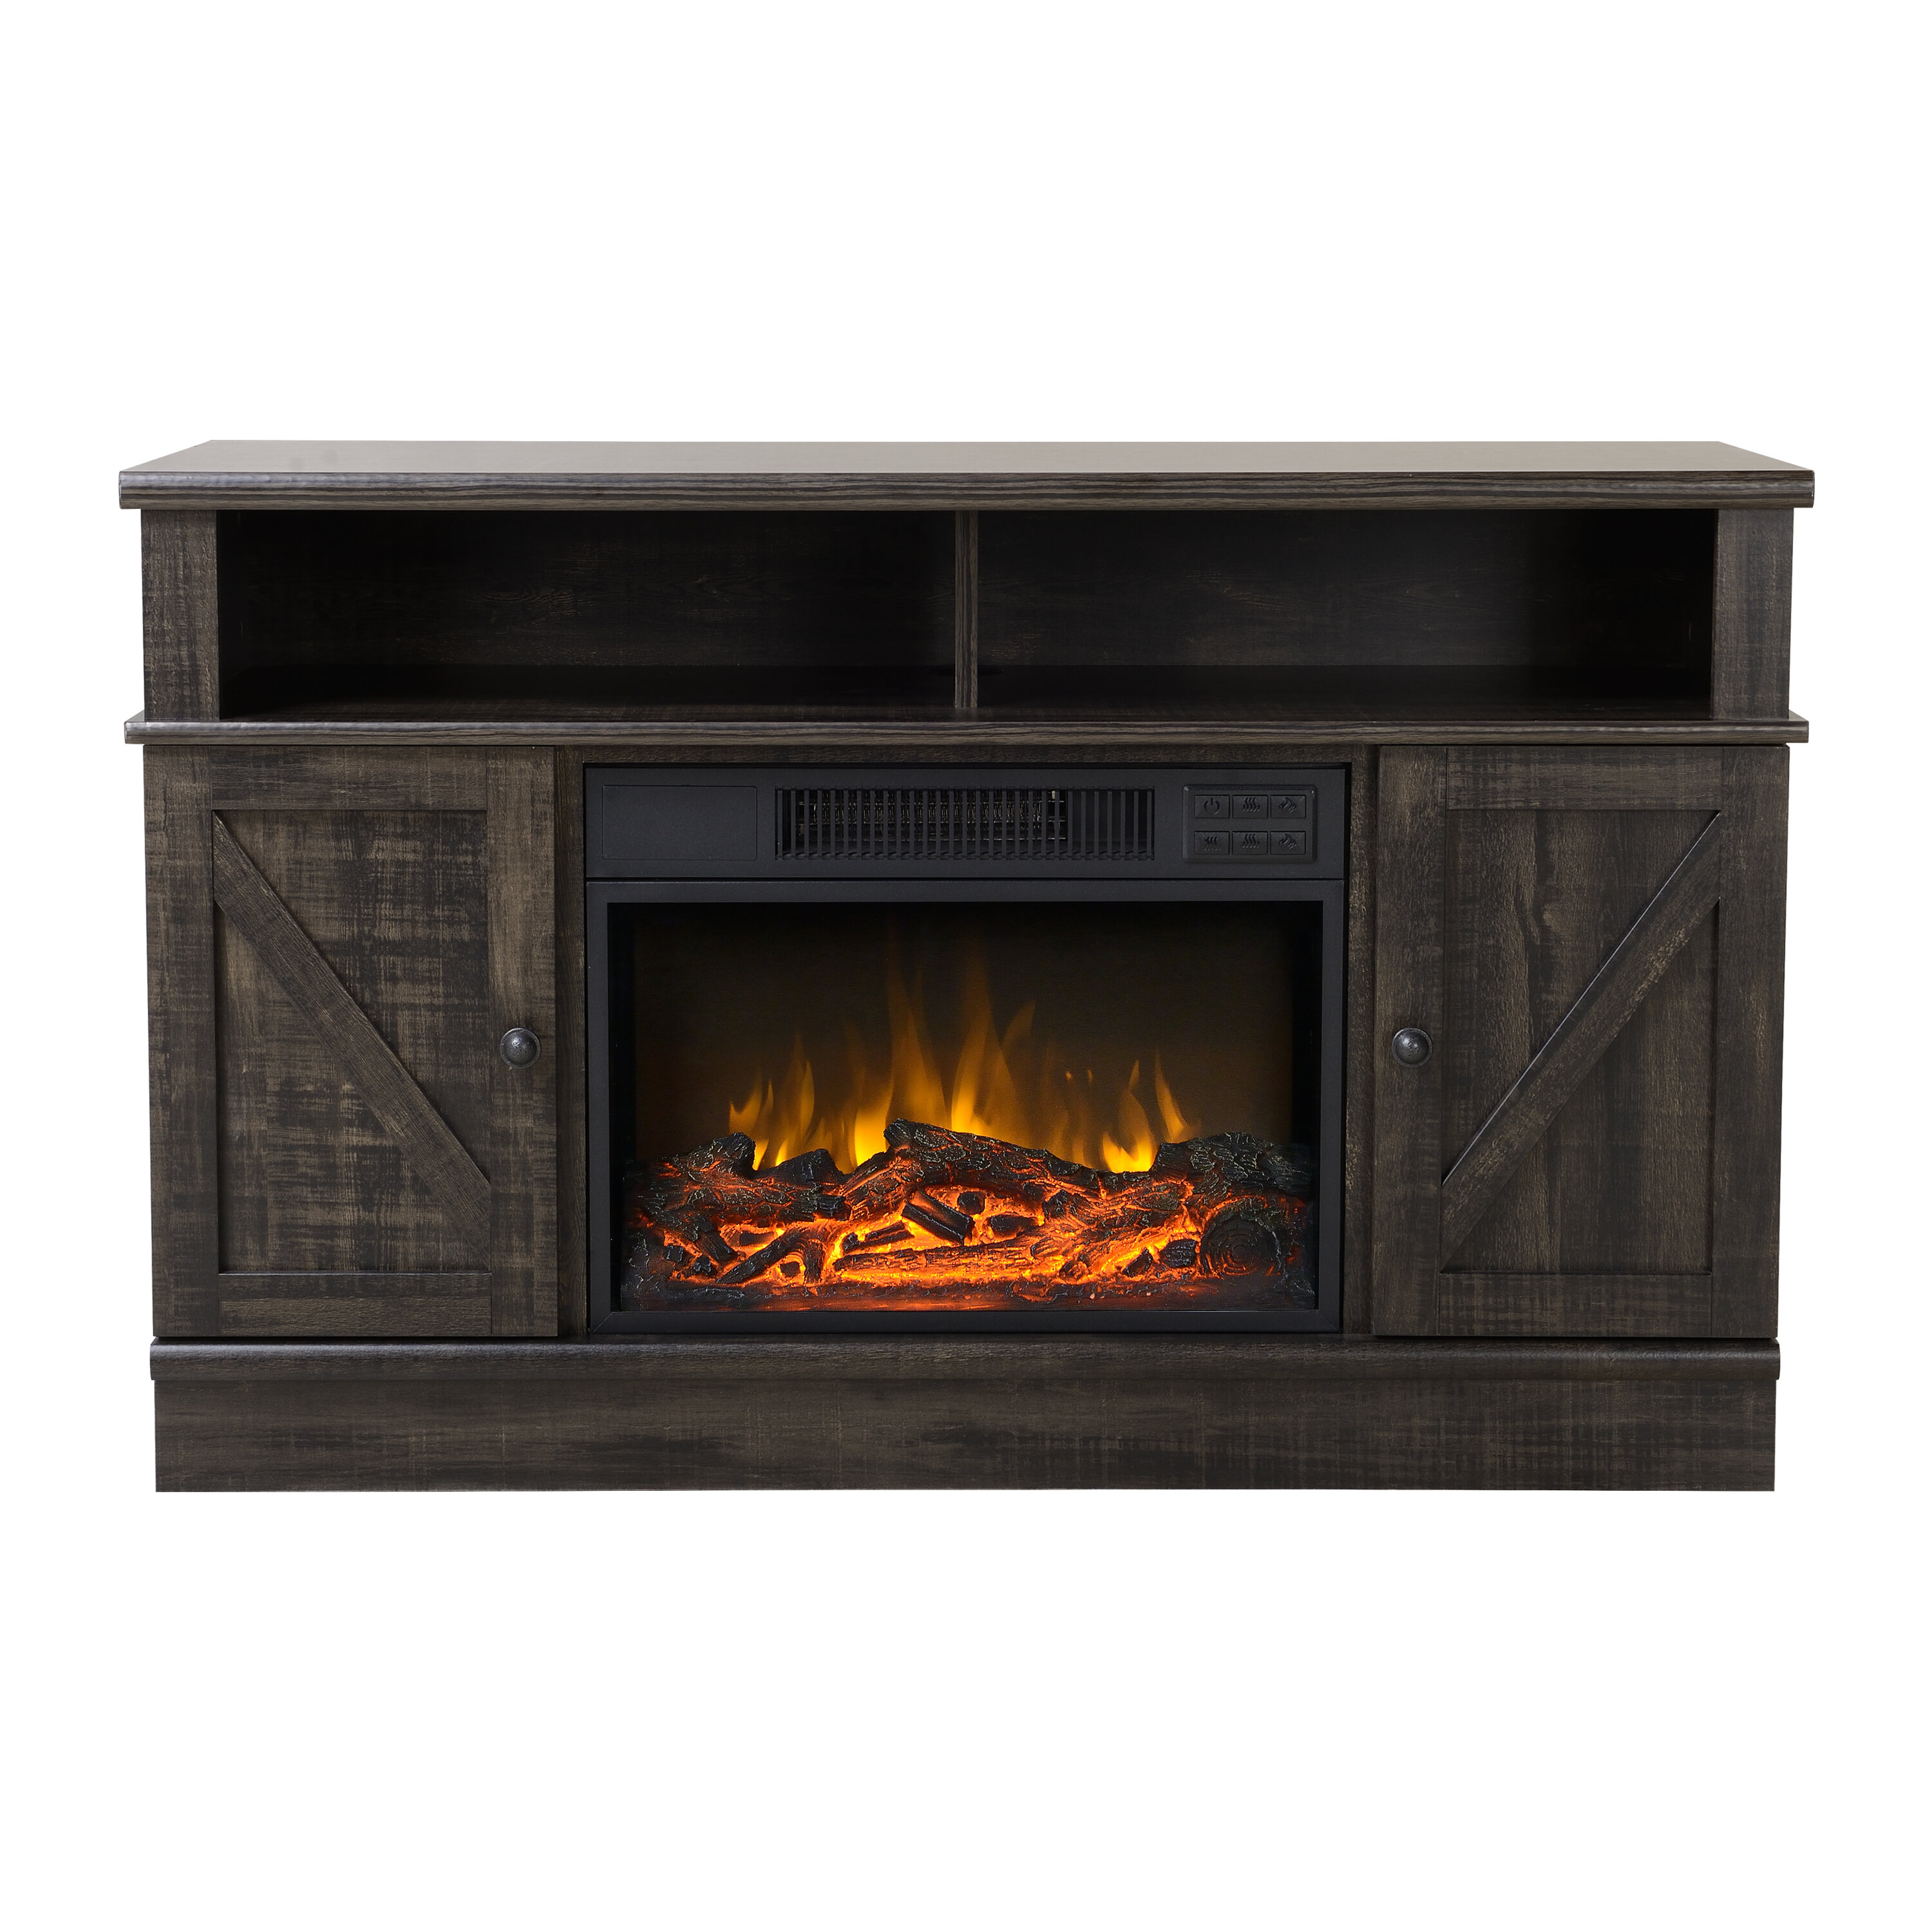 to with entertainment zoom log fireplace product furniture brick stand firebox tv stands the fireplaces austin hover item